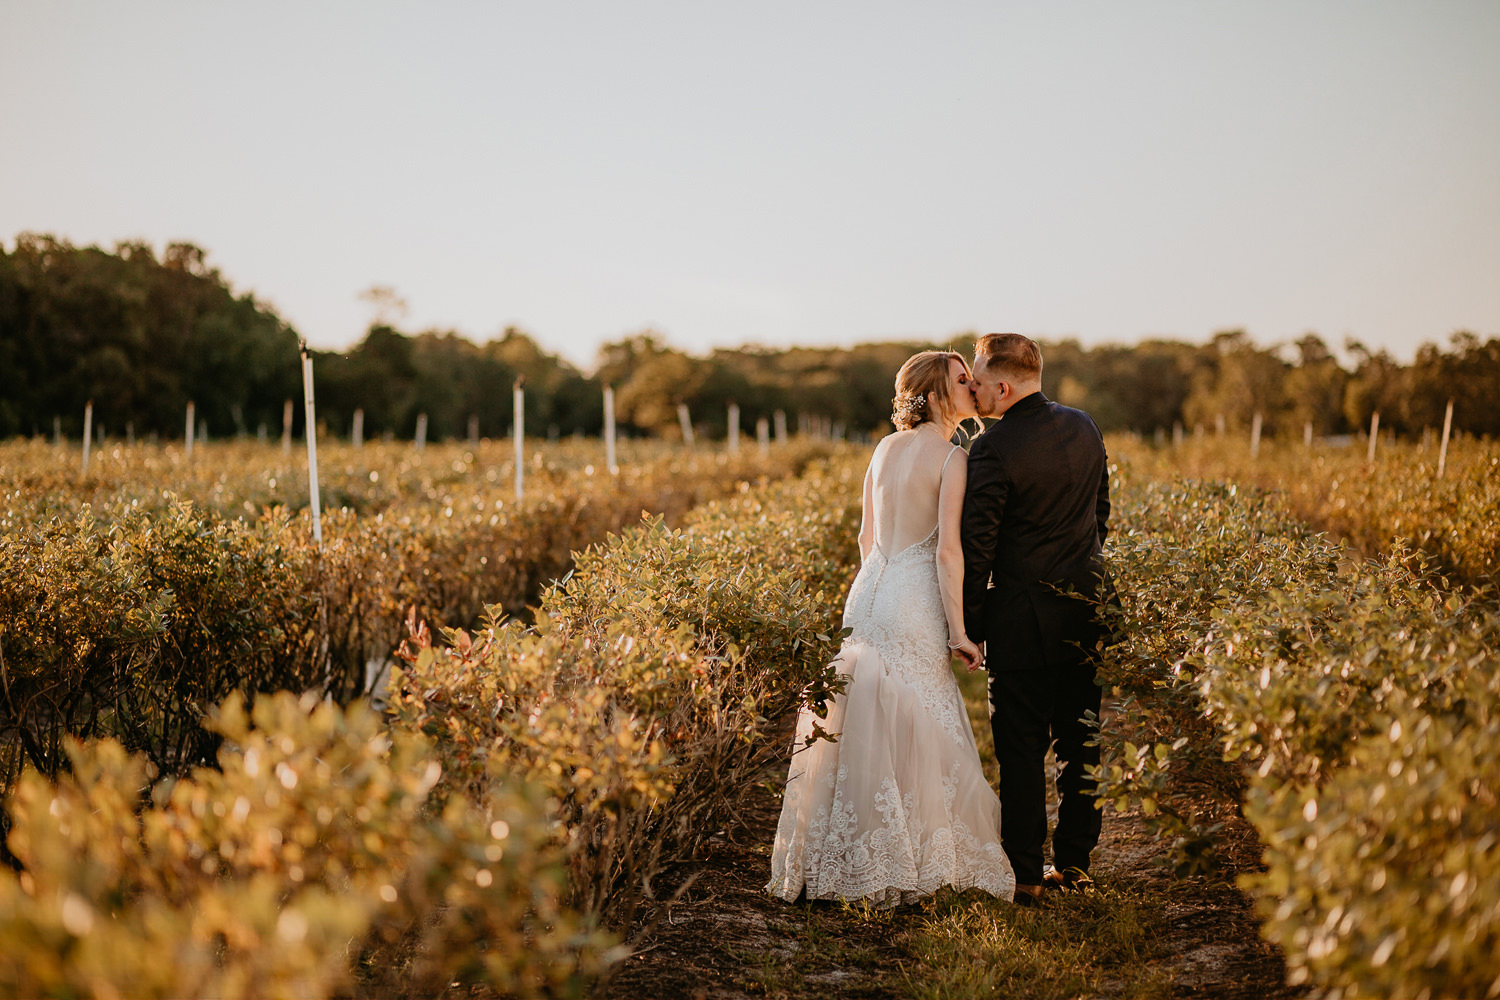 newlyweds in the middle of the blueberry farm kissing during sunset